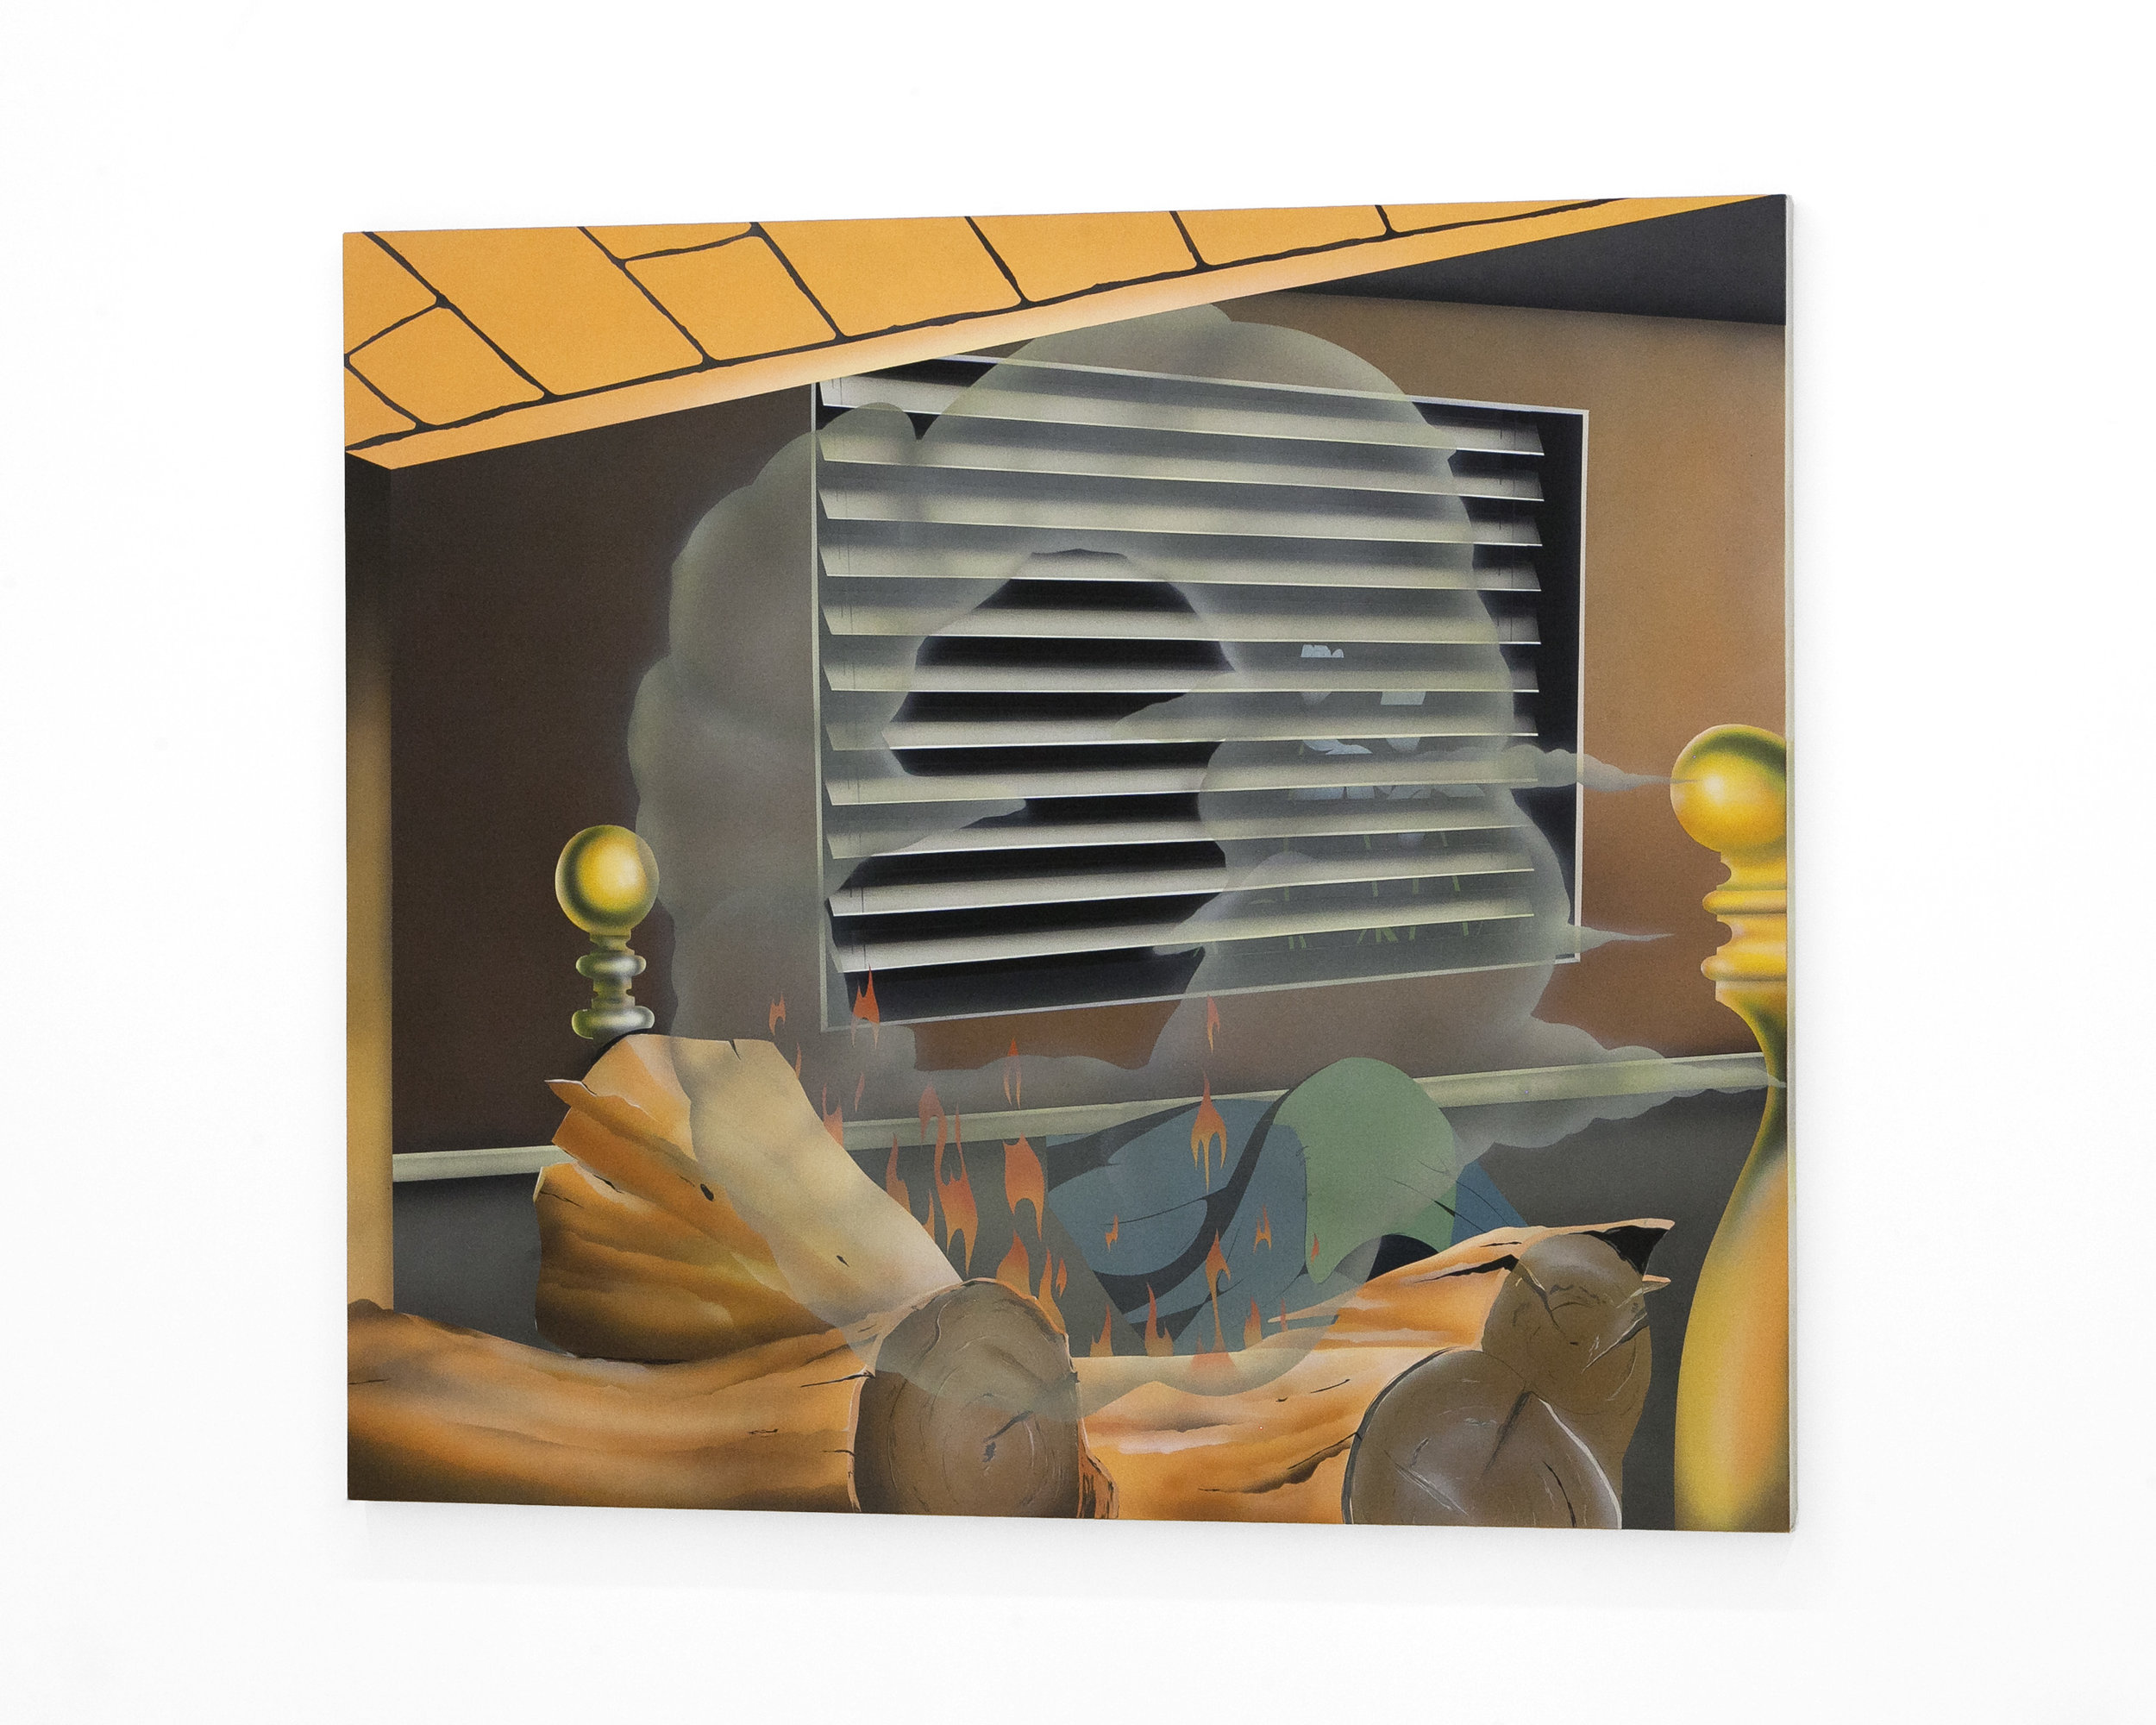 aej_lrg_fireplace_canvas_5.jpg